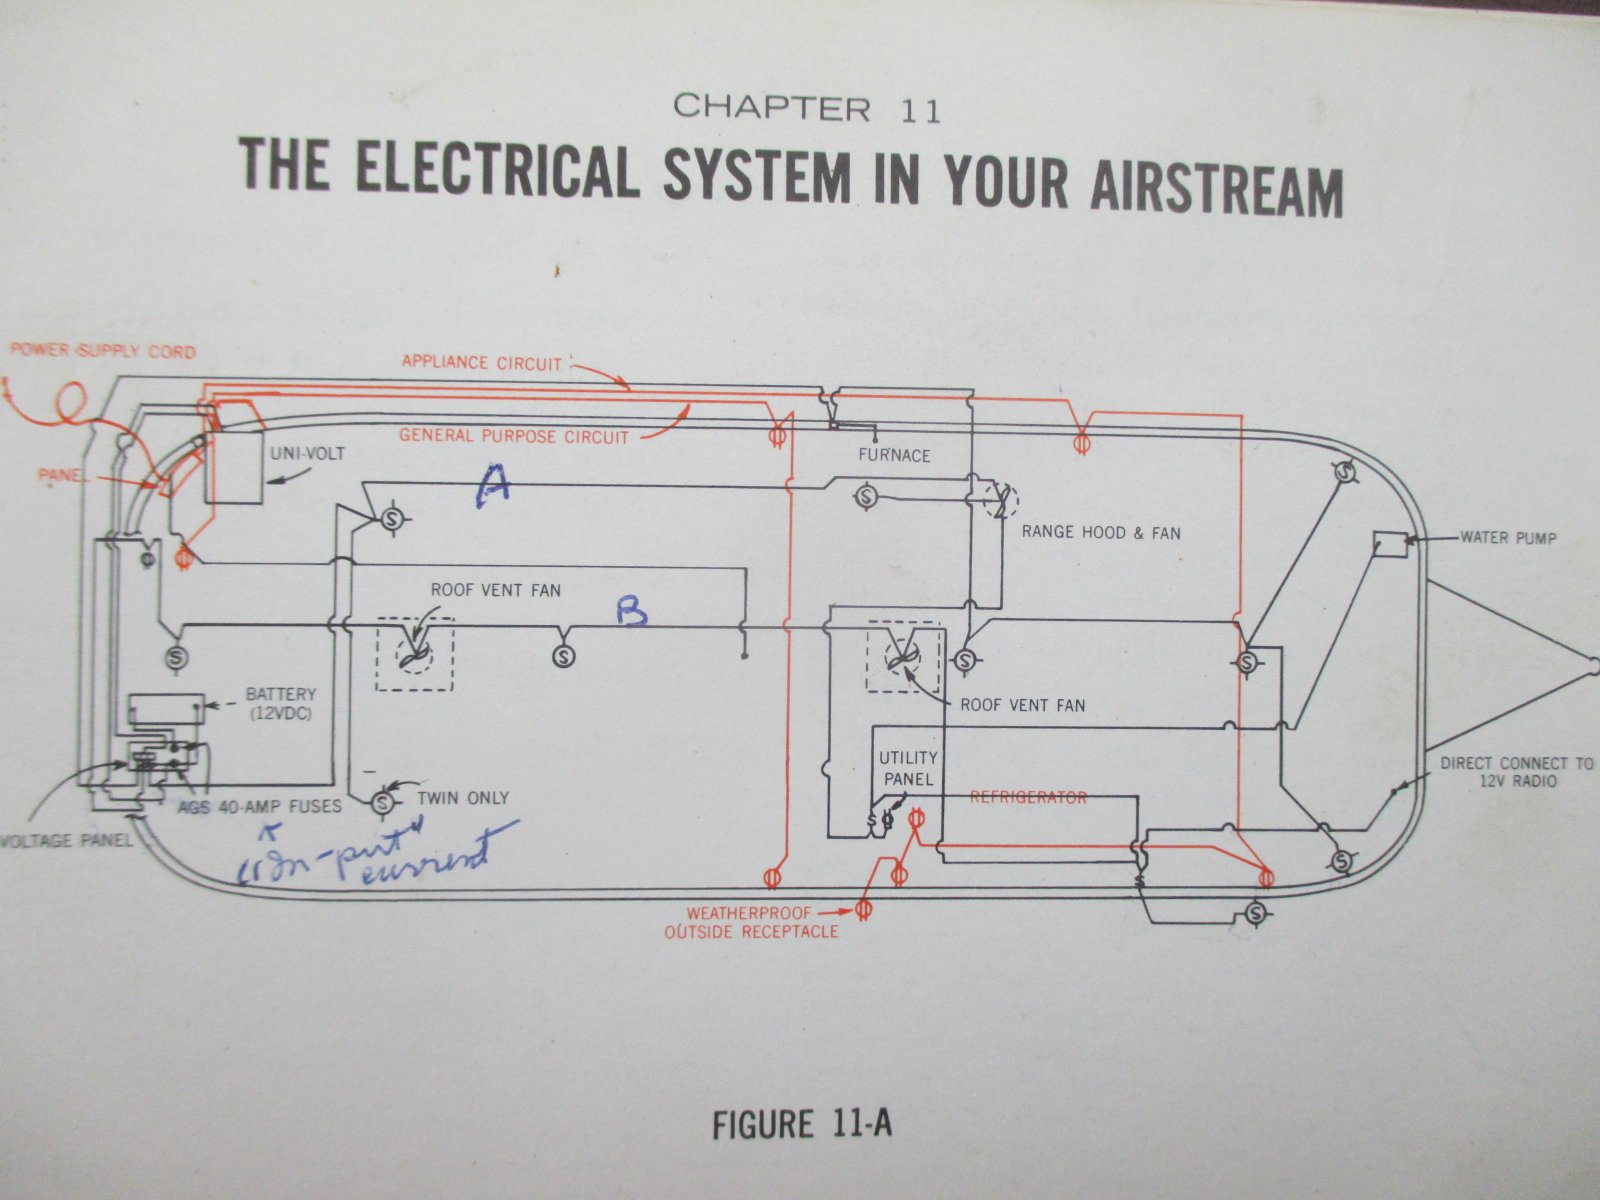 wiring diagram for jayco pop up camper wiring jayco battery wiring diagram wire diagram on wiring diagram for jayco pop up camper